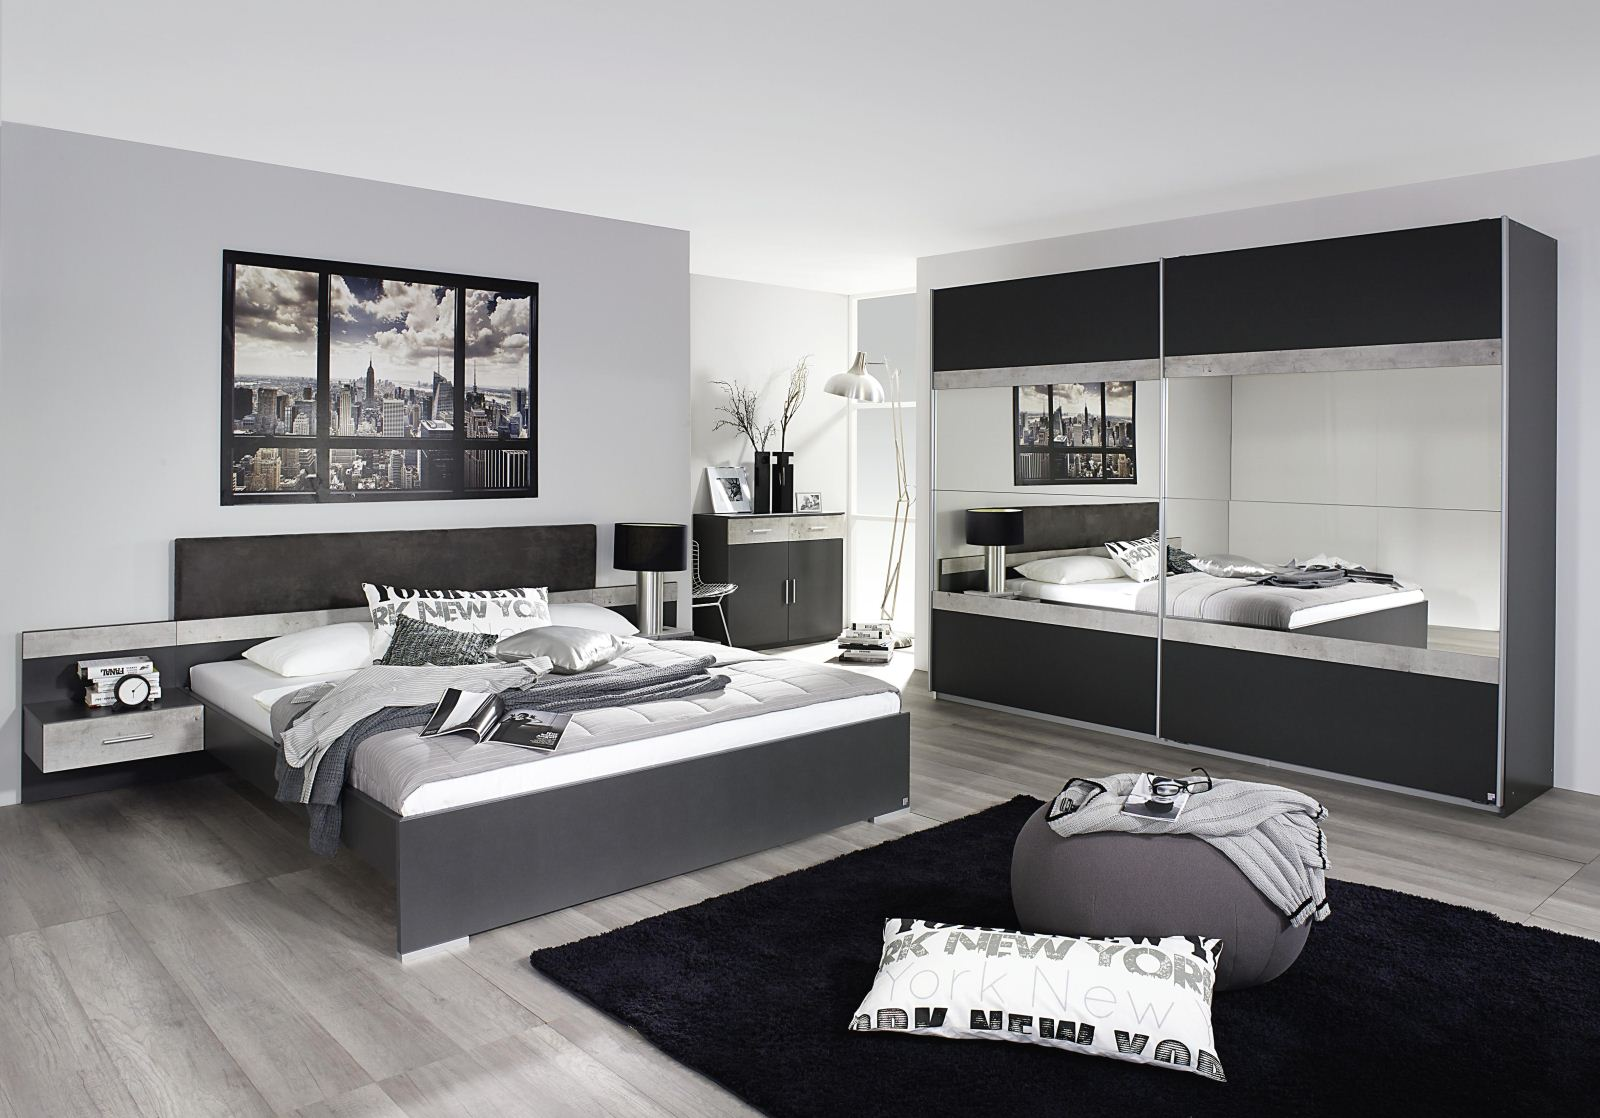 slaapcomfort slaapkamers. Black Bedroom Furniture Sets. Home Design Ideas